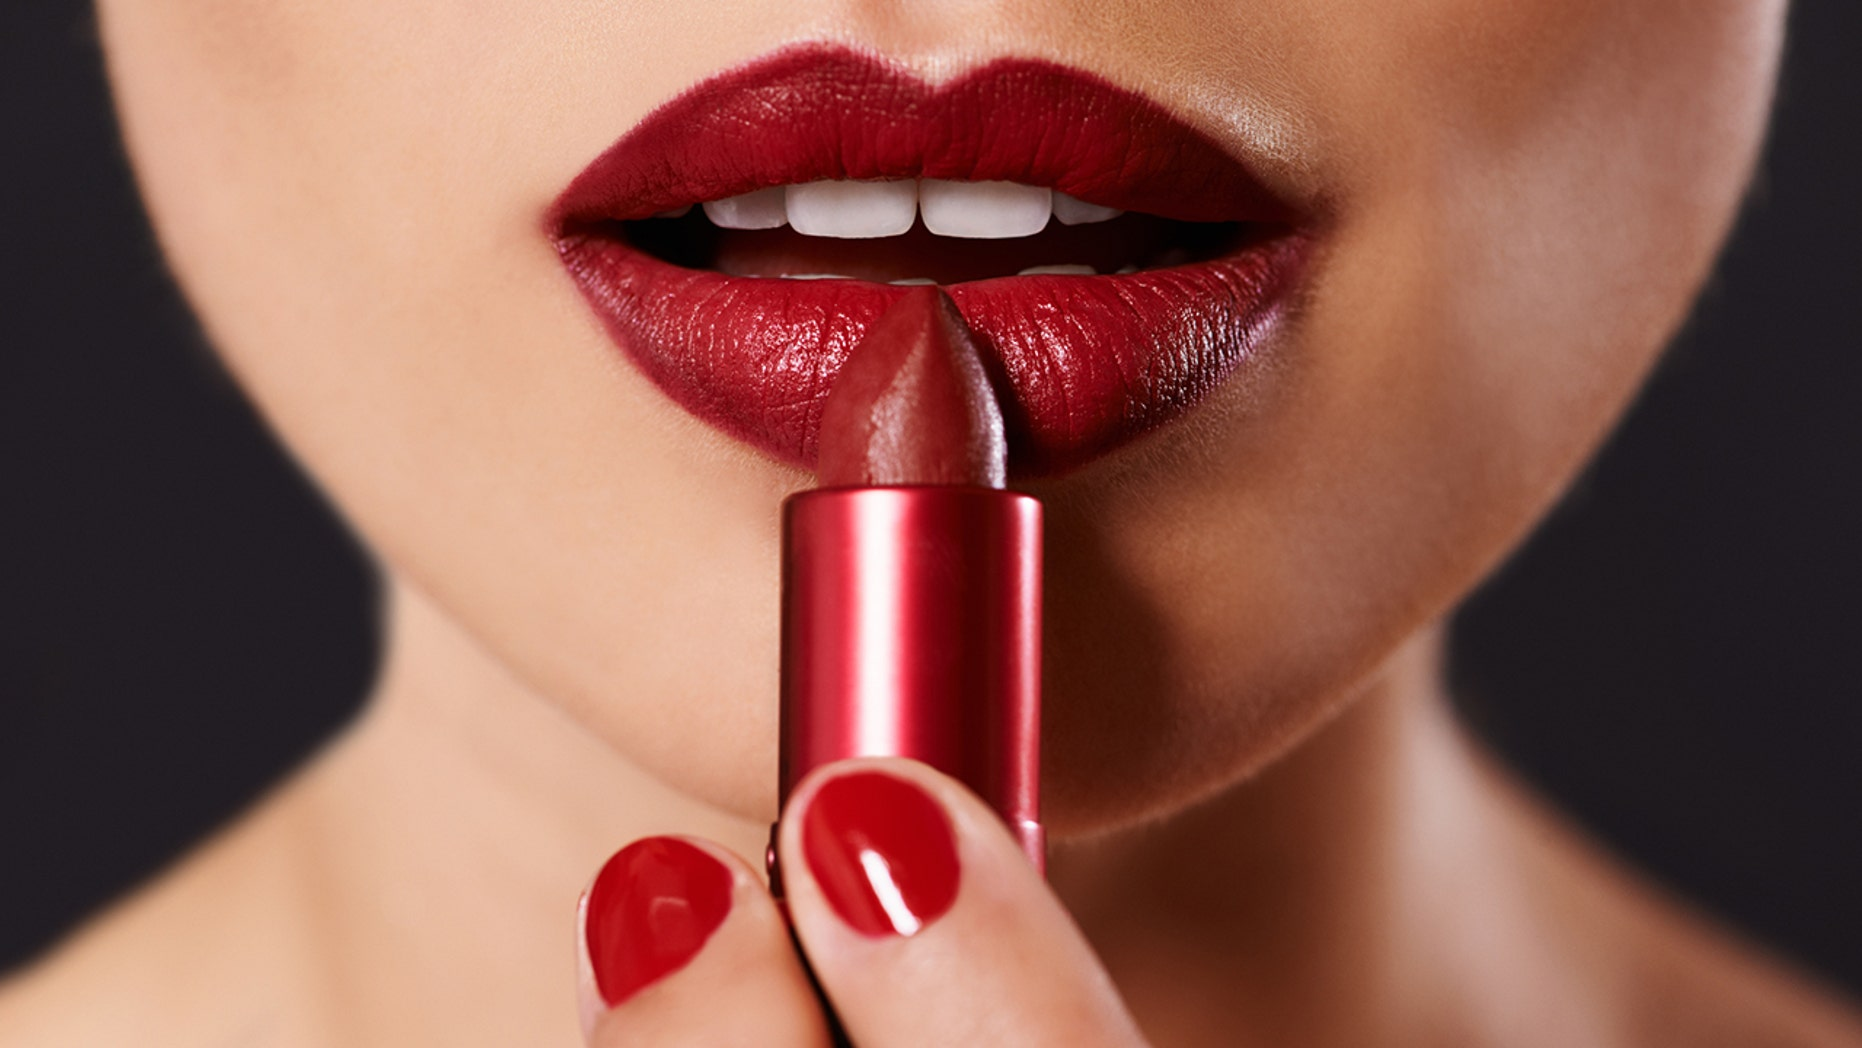 It's no secret that makeup - especially lipstick - offers a uniquely powerful tool for transformation.